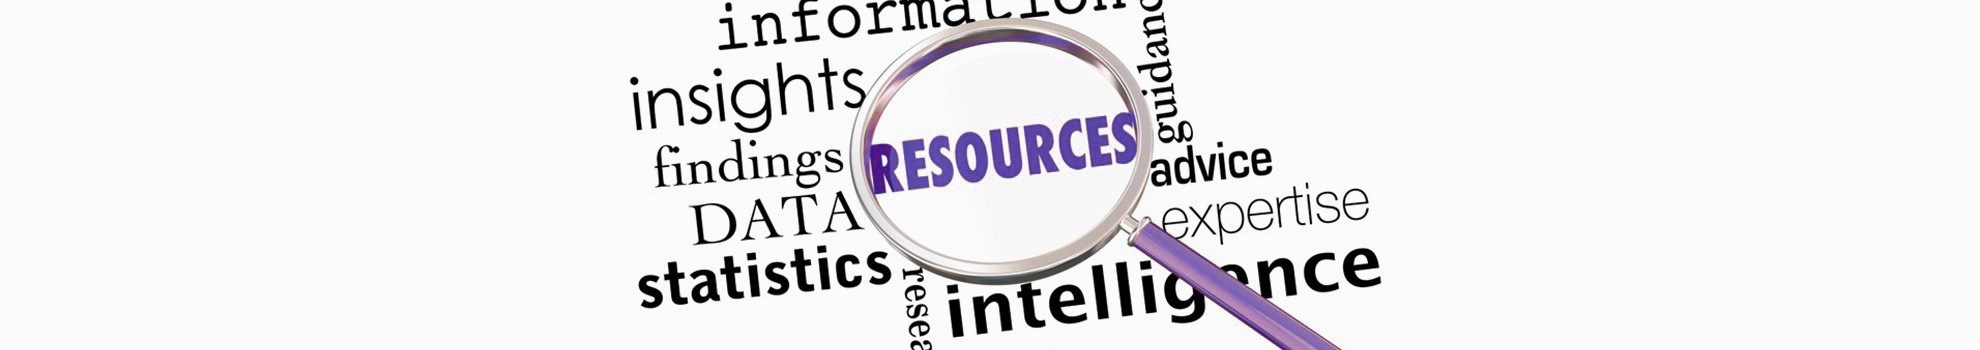 IPS_Resources_Main_Banner_purple